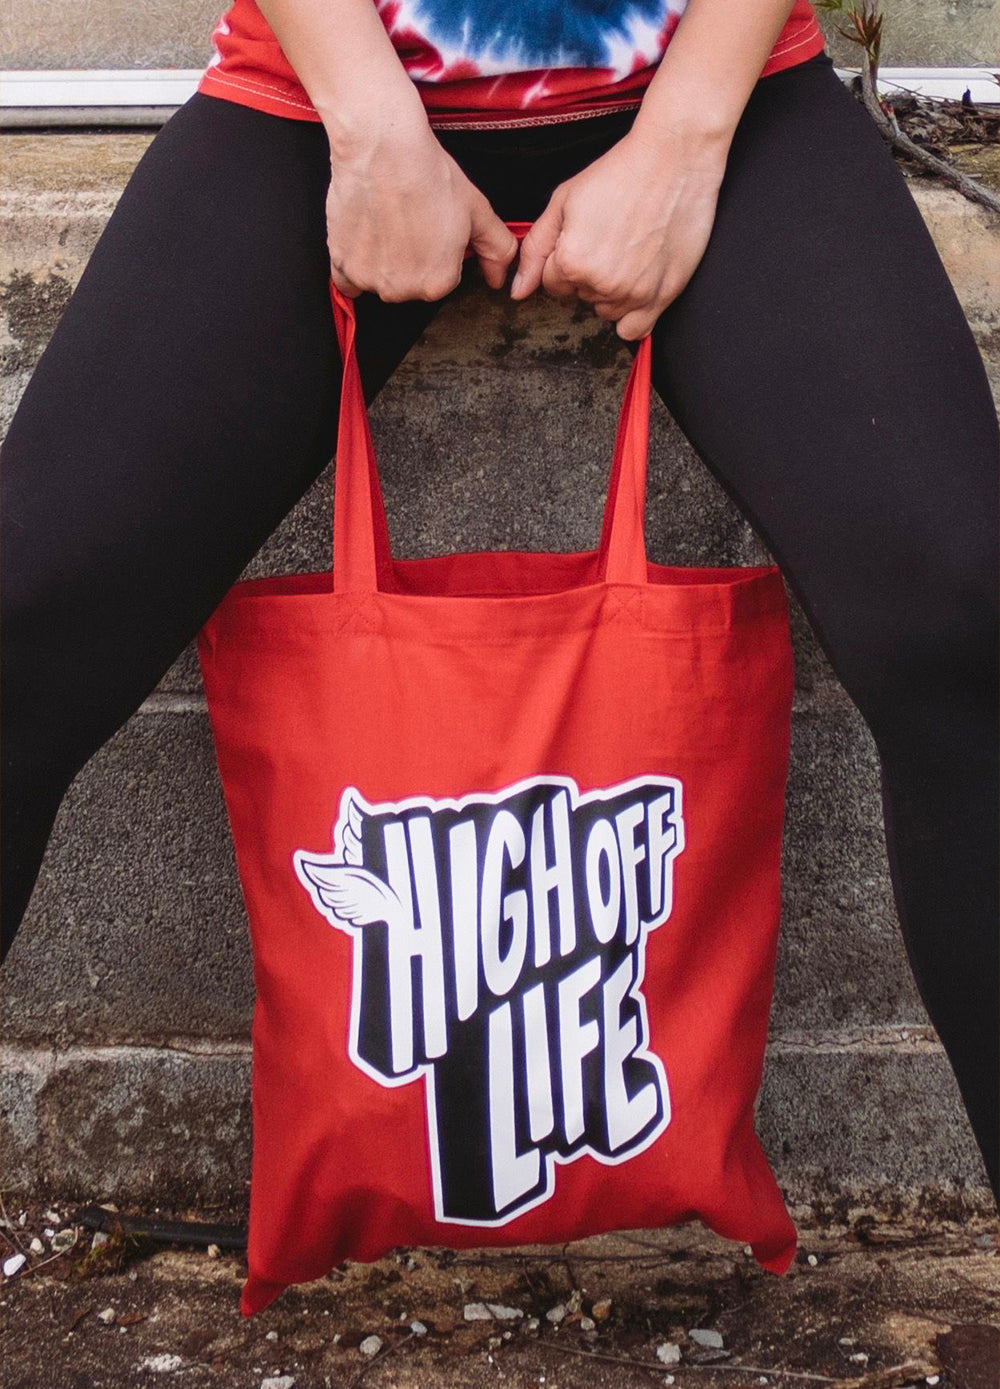 High Off Life Red Tote Bag